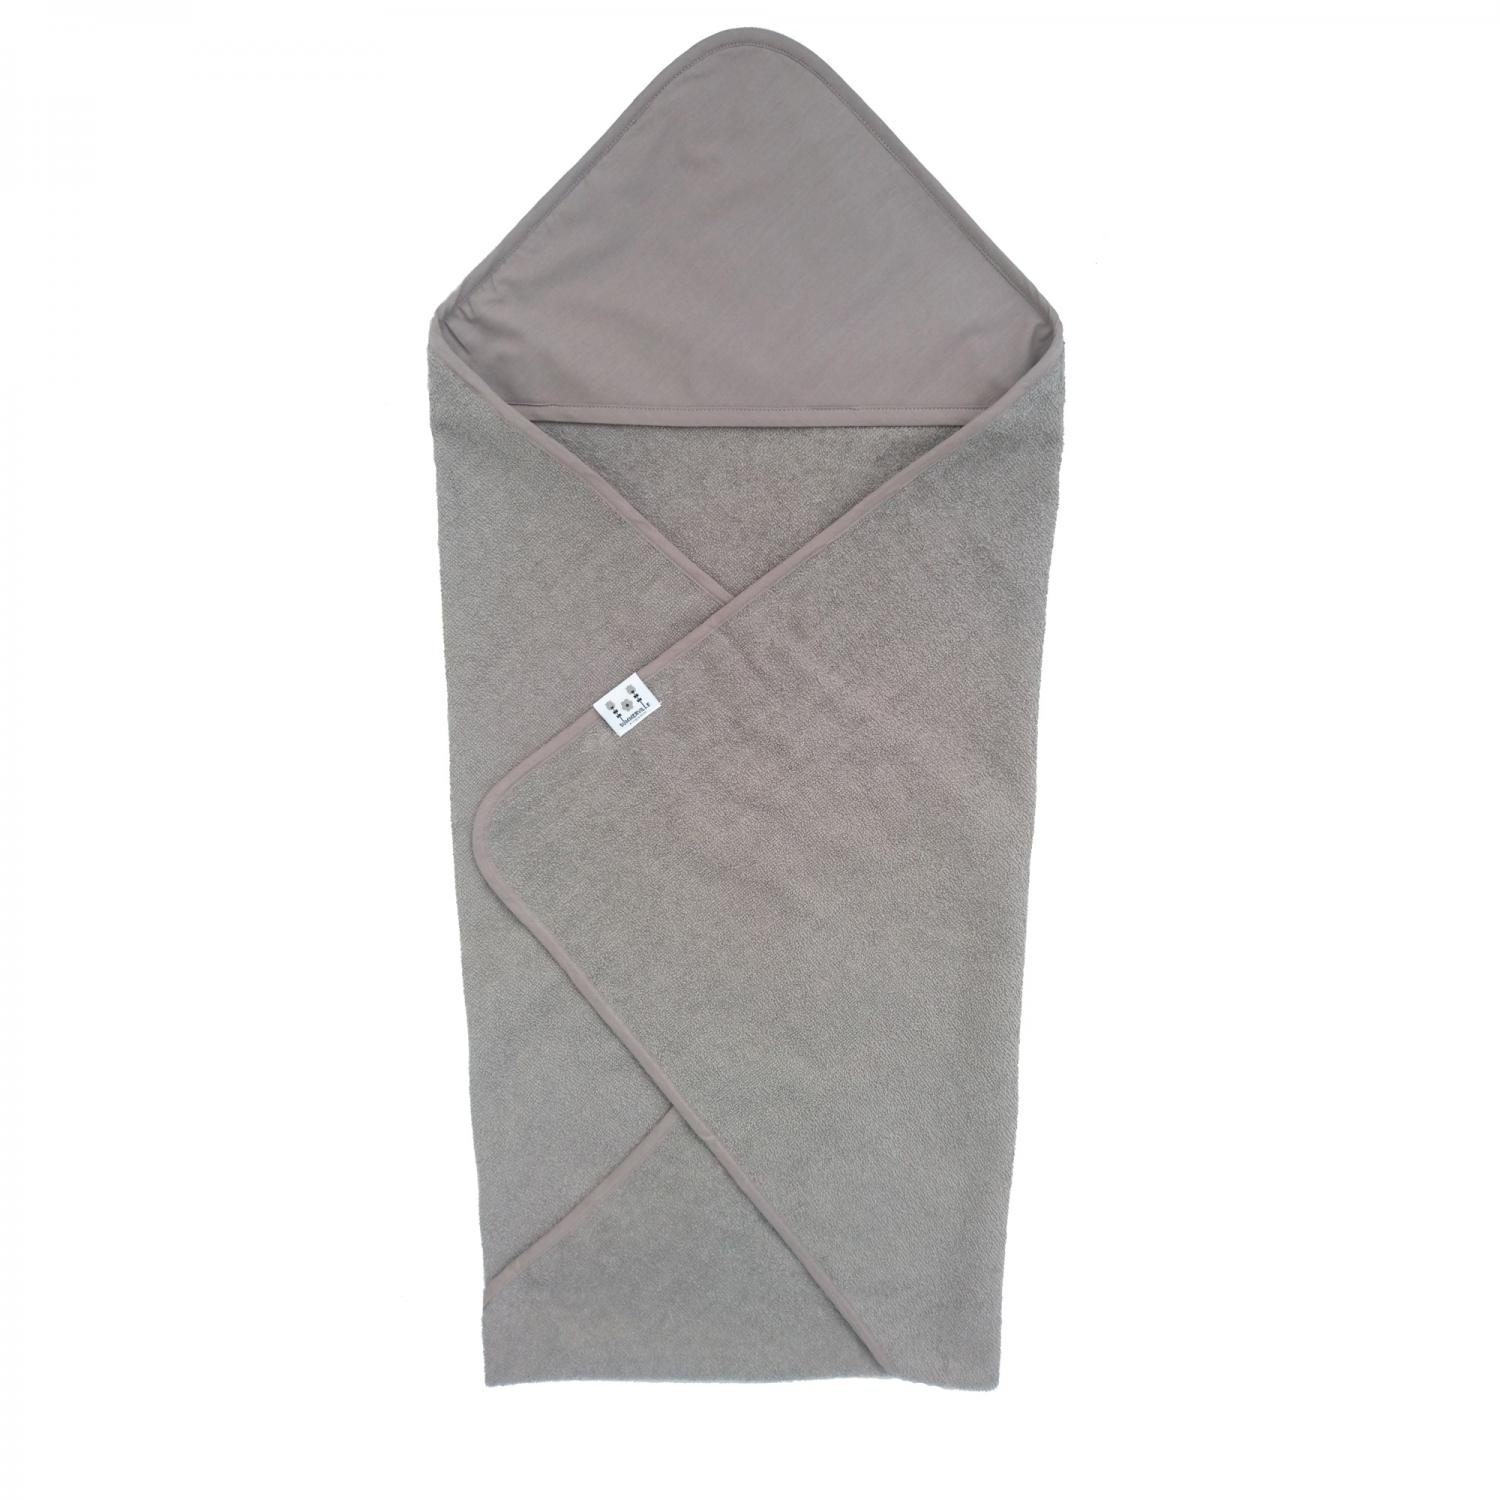 Hooded towel style grey